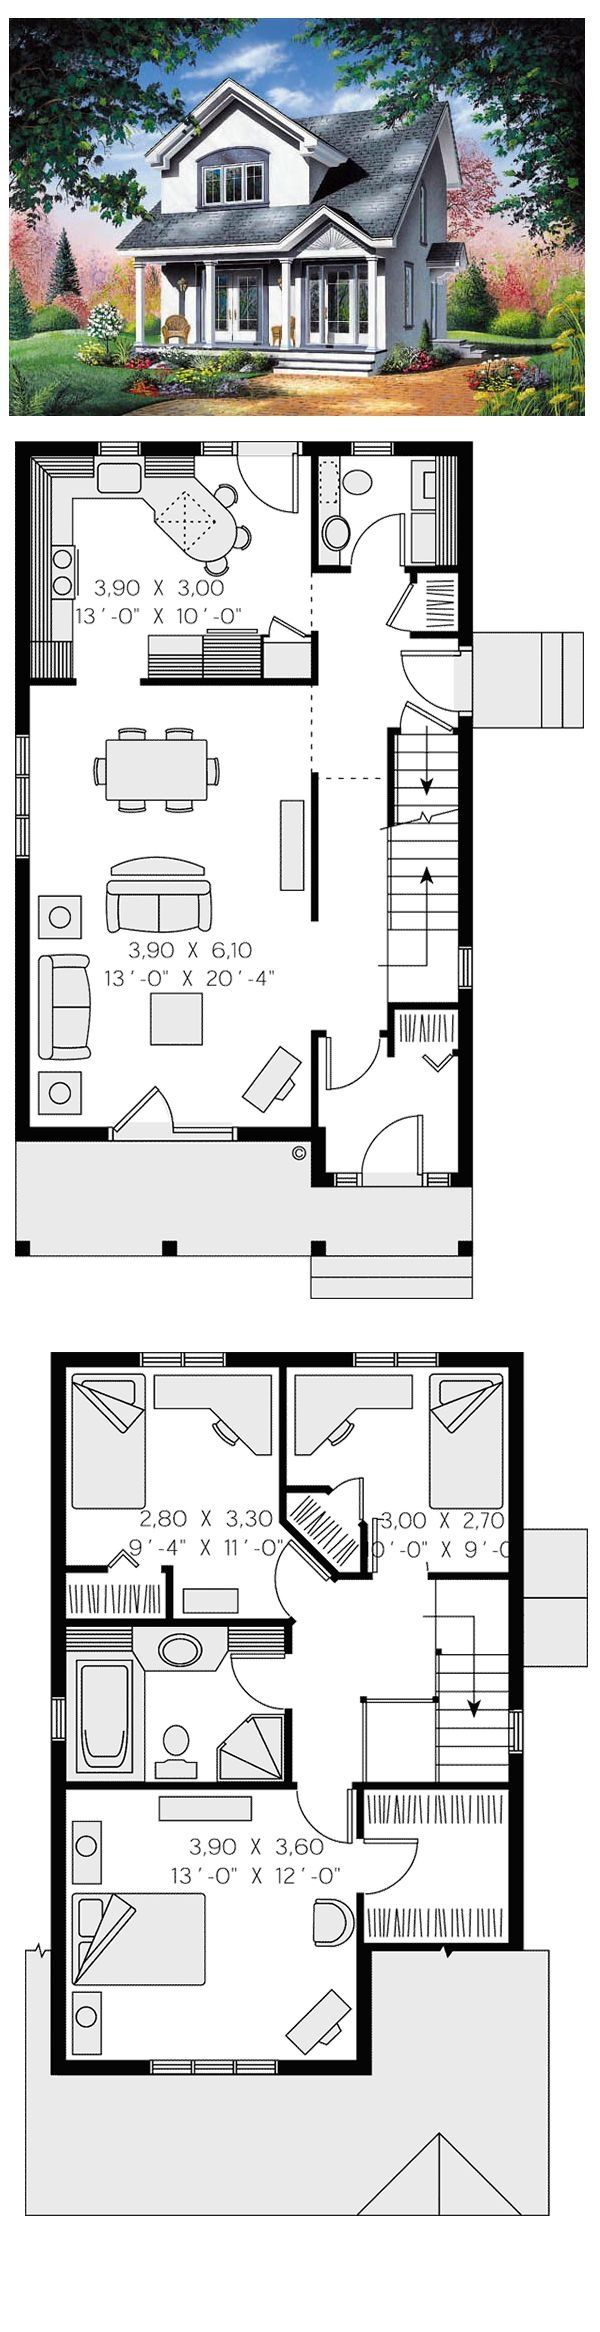 272 best home floor plans images on pinterest small houses contemporary house plan 65286 total living area 1310 sq ft 3 bedrooms